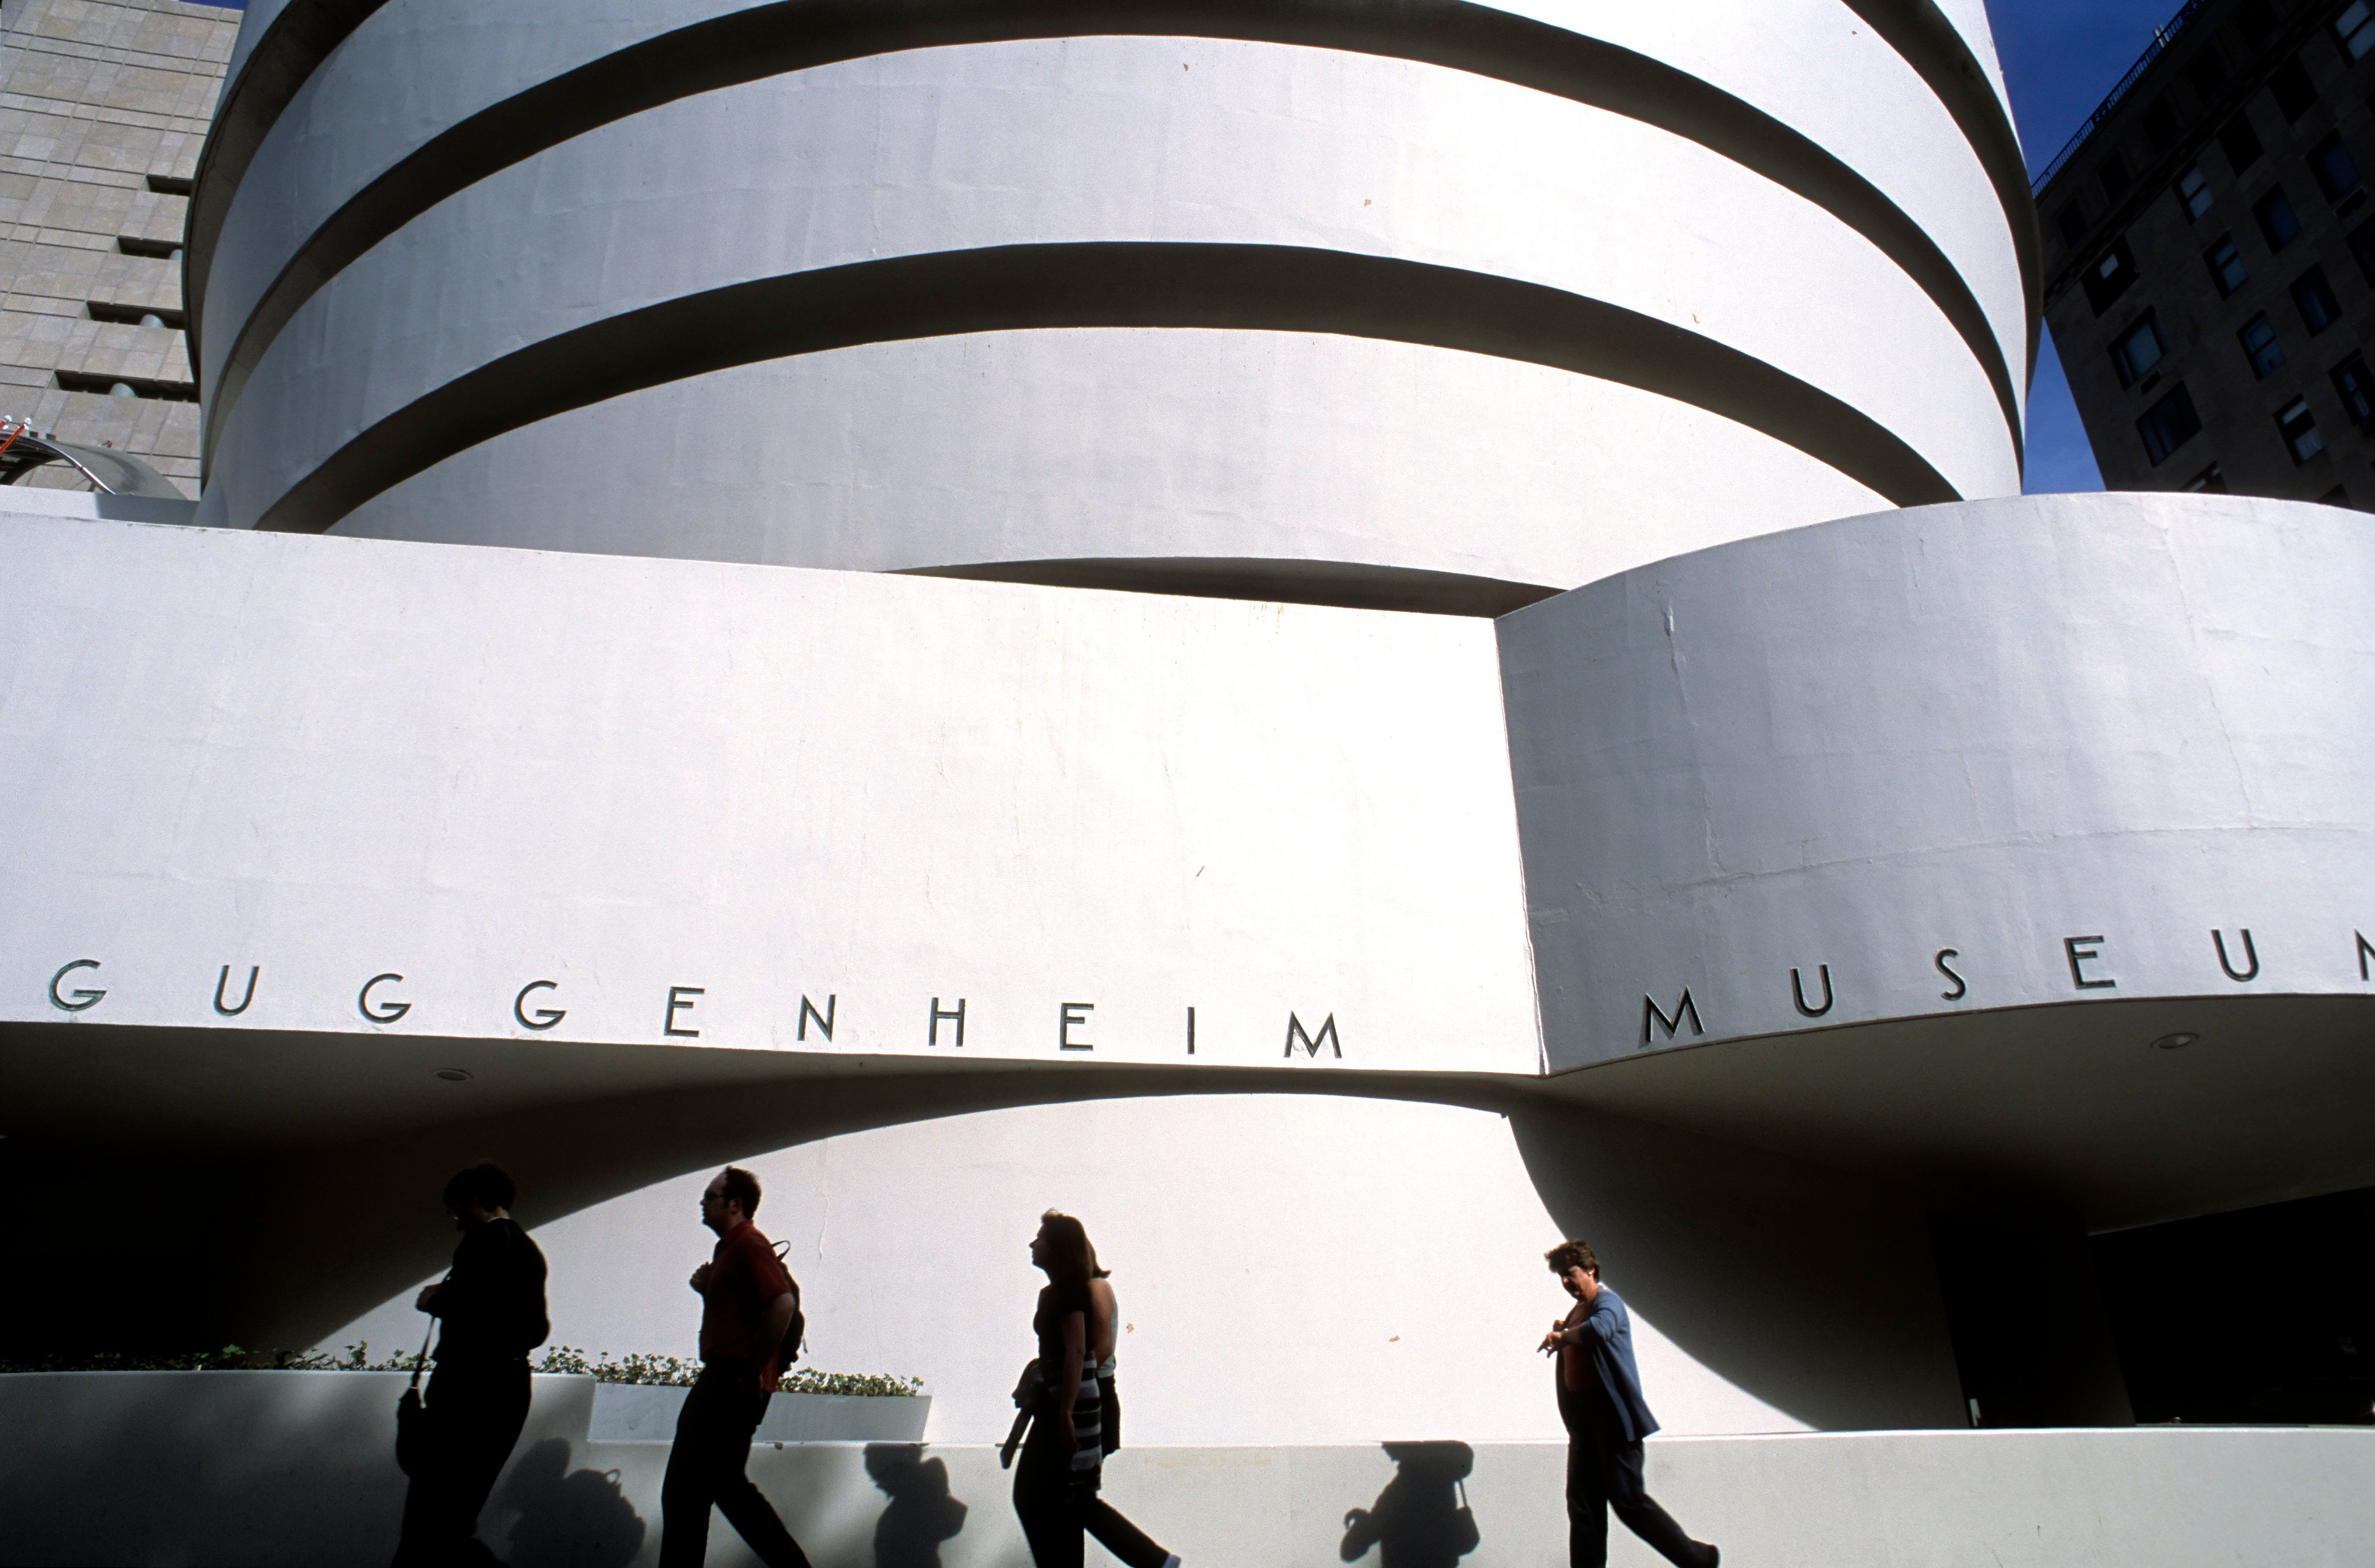 Guggenheim Museum Pulls Controversial Animal-Related Art After ...